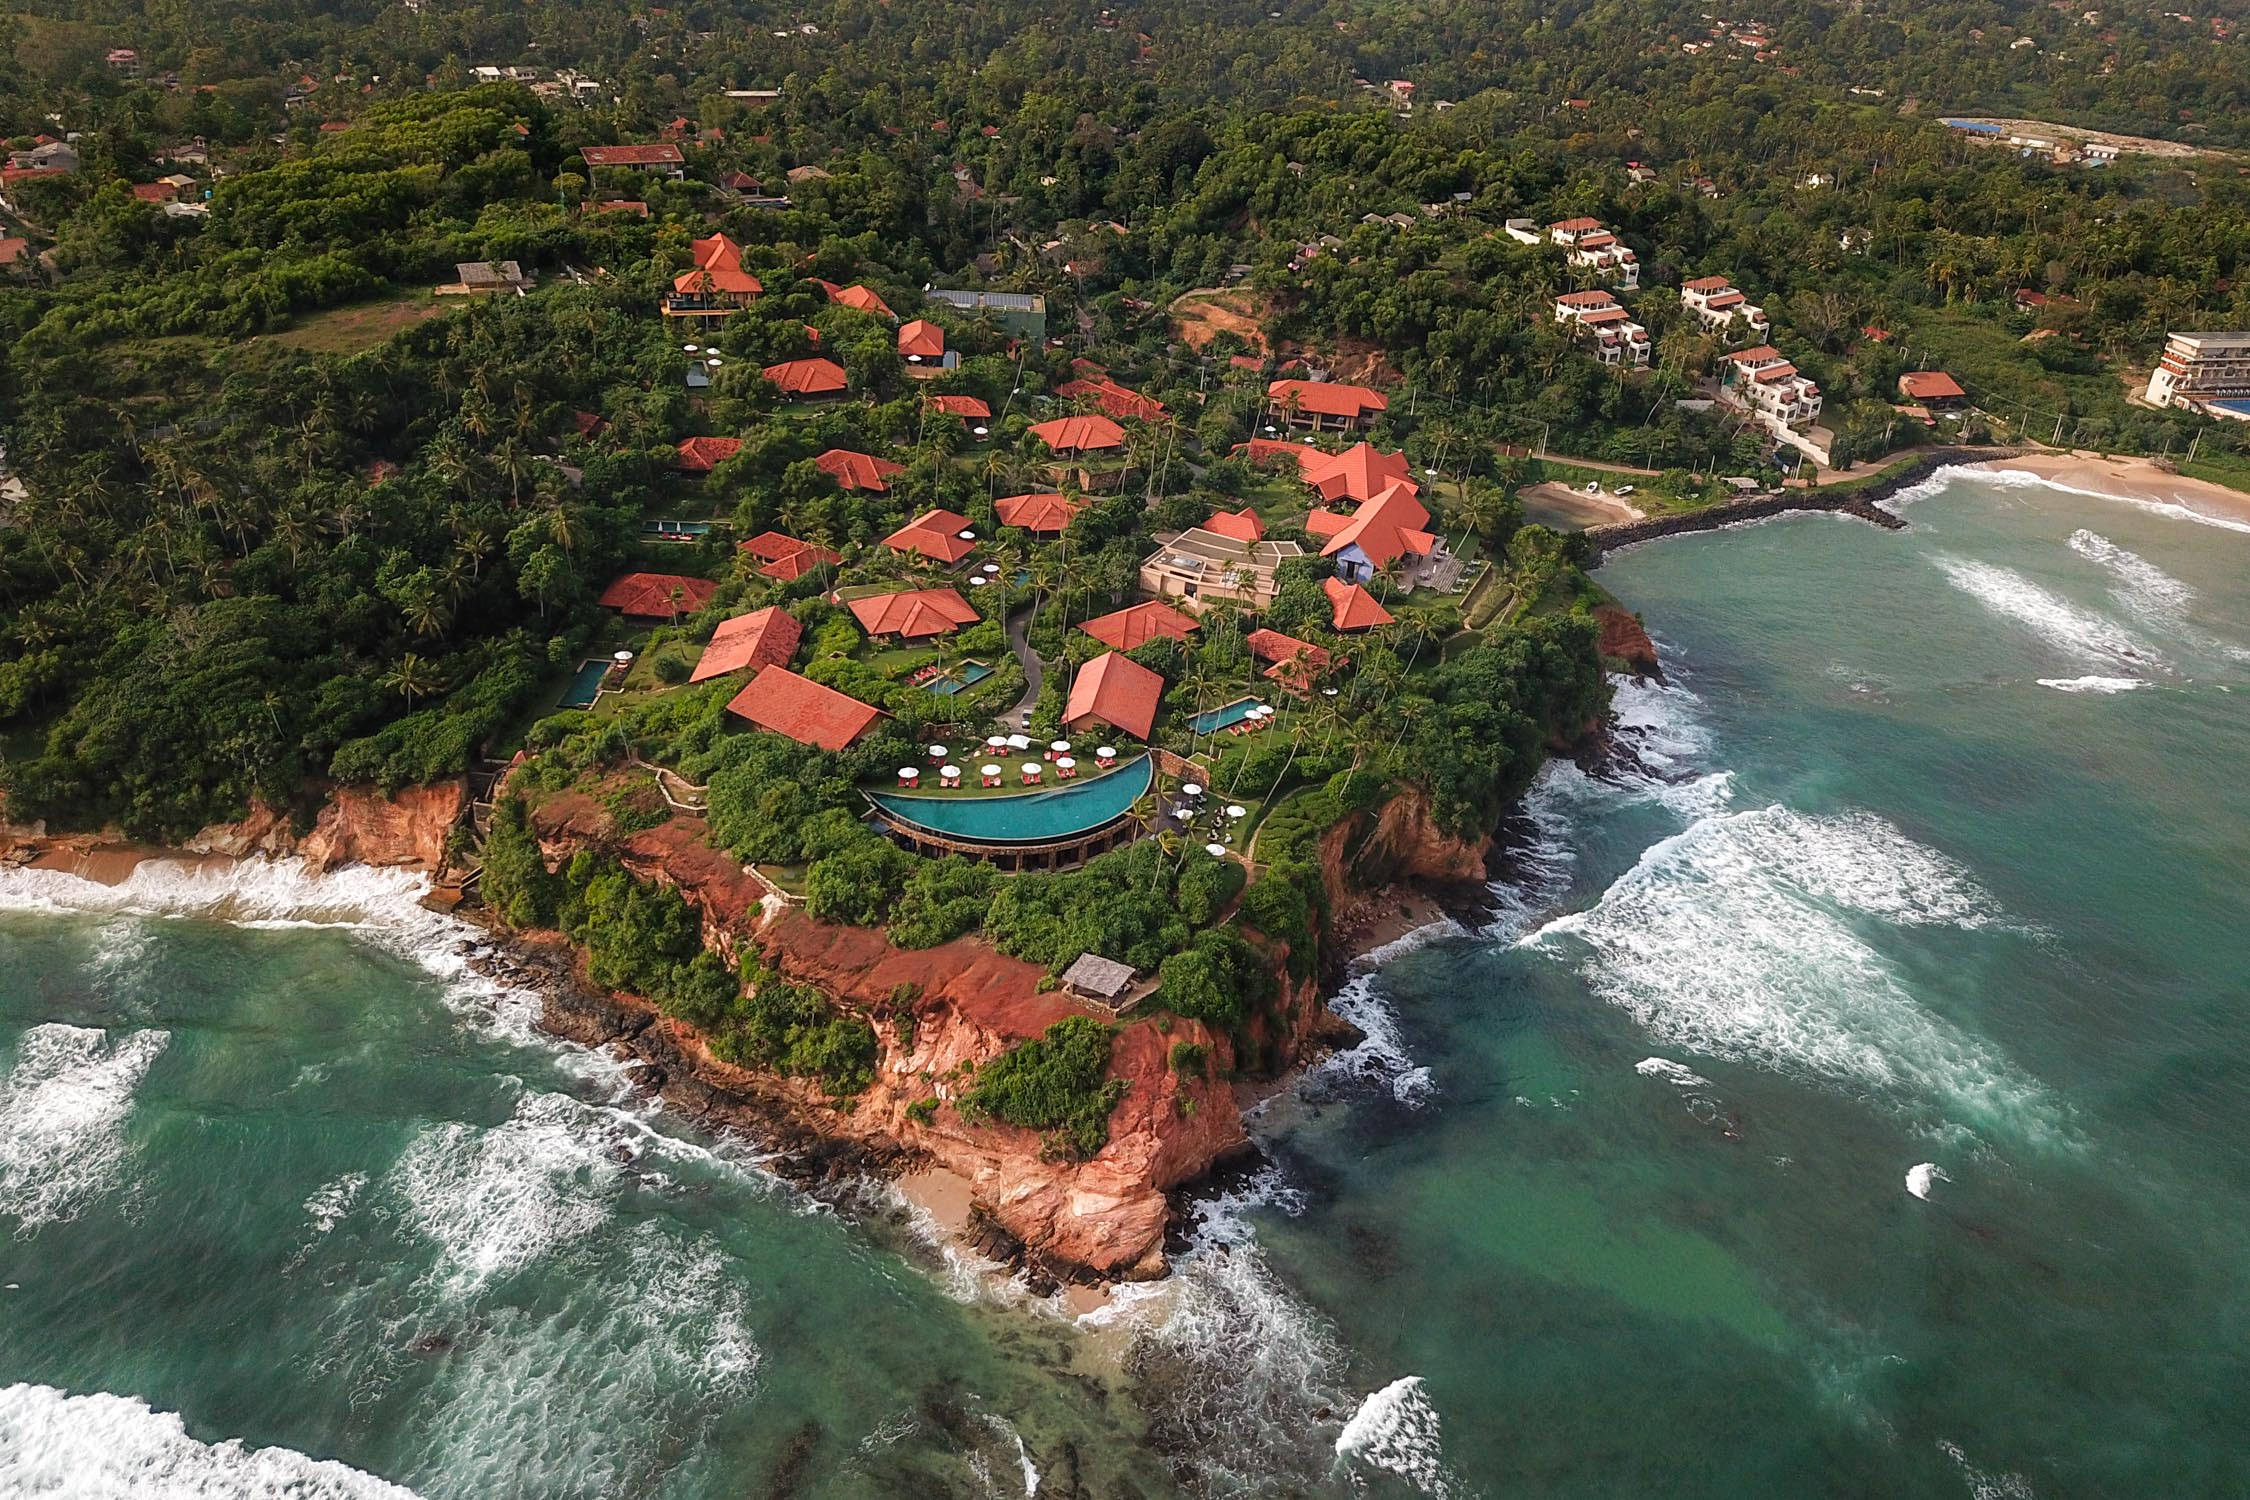 Perched 100 feet above the Indian Ocean, Cape Weligama occupies a prime spot on Sri Lanka's dramatic southern coast